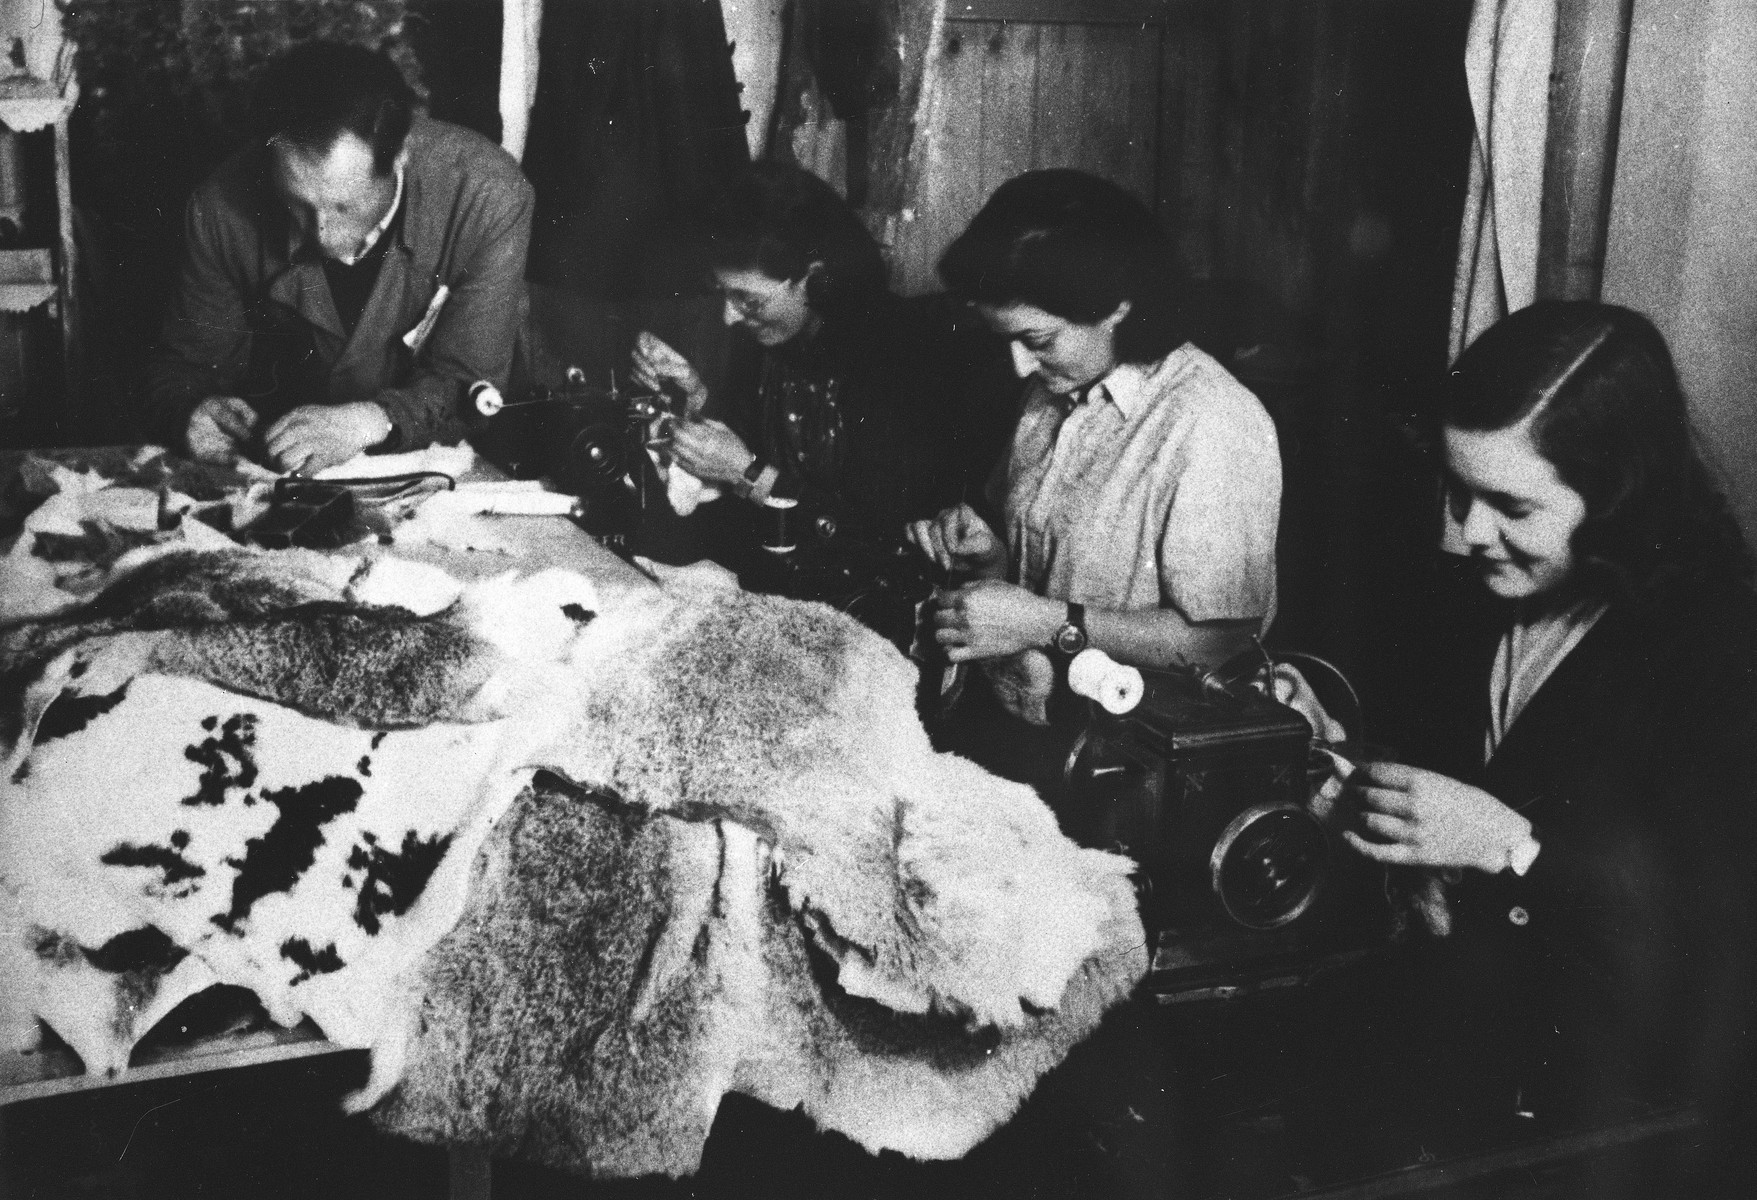 Prisoners sew coats from animal pelts at a Slovak labor camp.